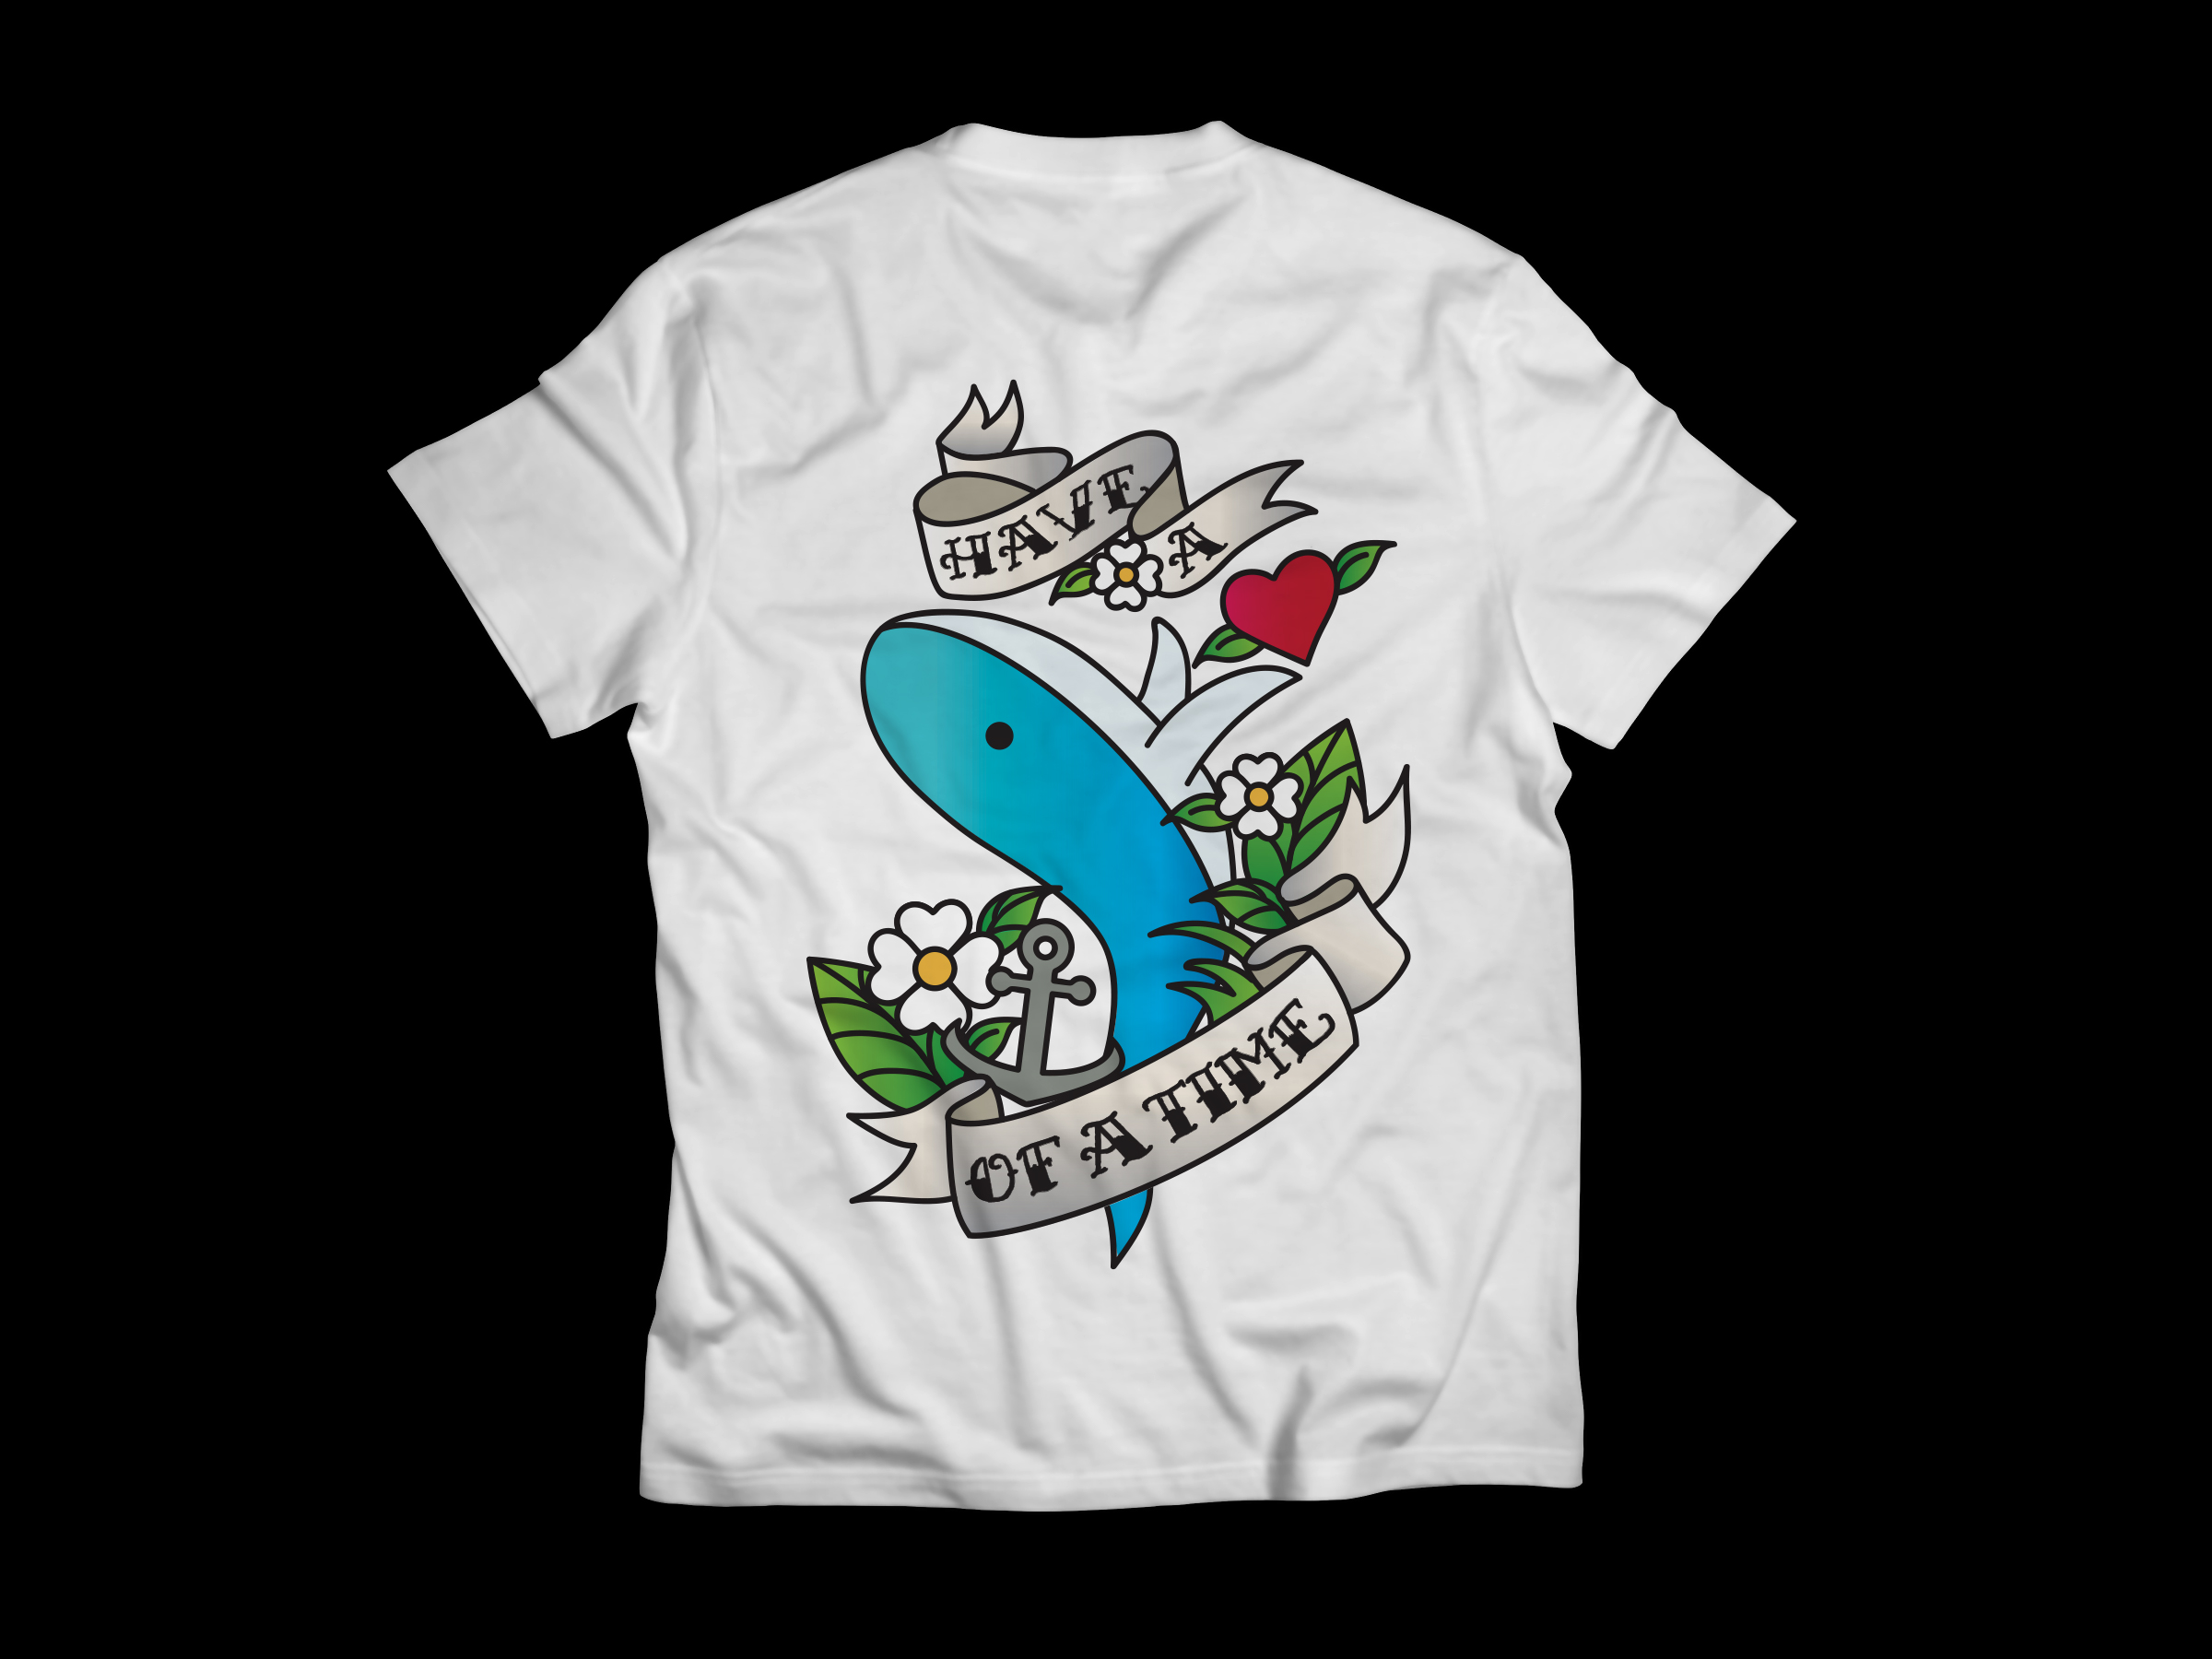 Design t shirt school - Use Of Old School Tattoo Style To Create A New T Shirt Design